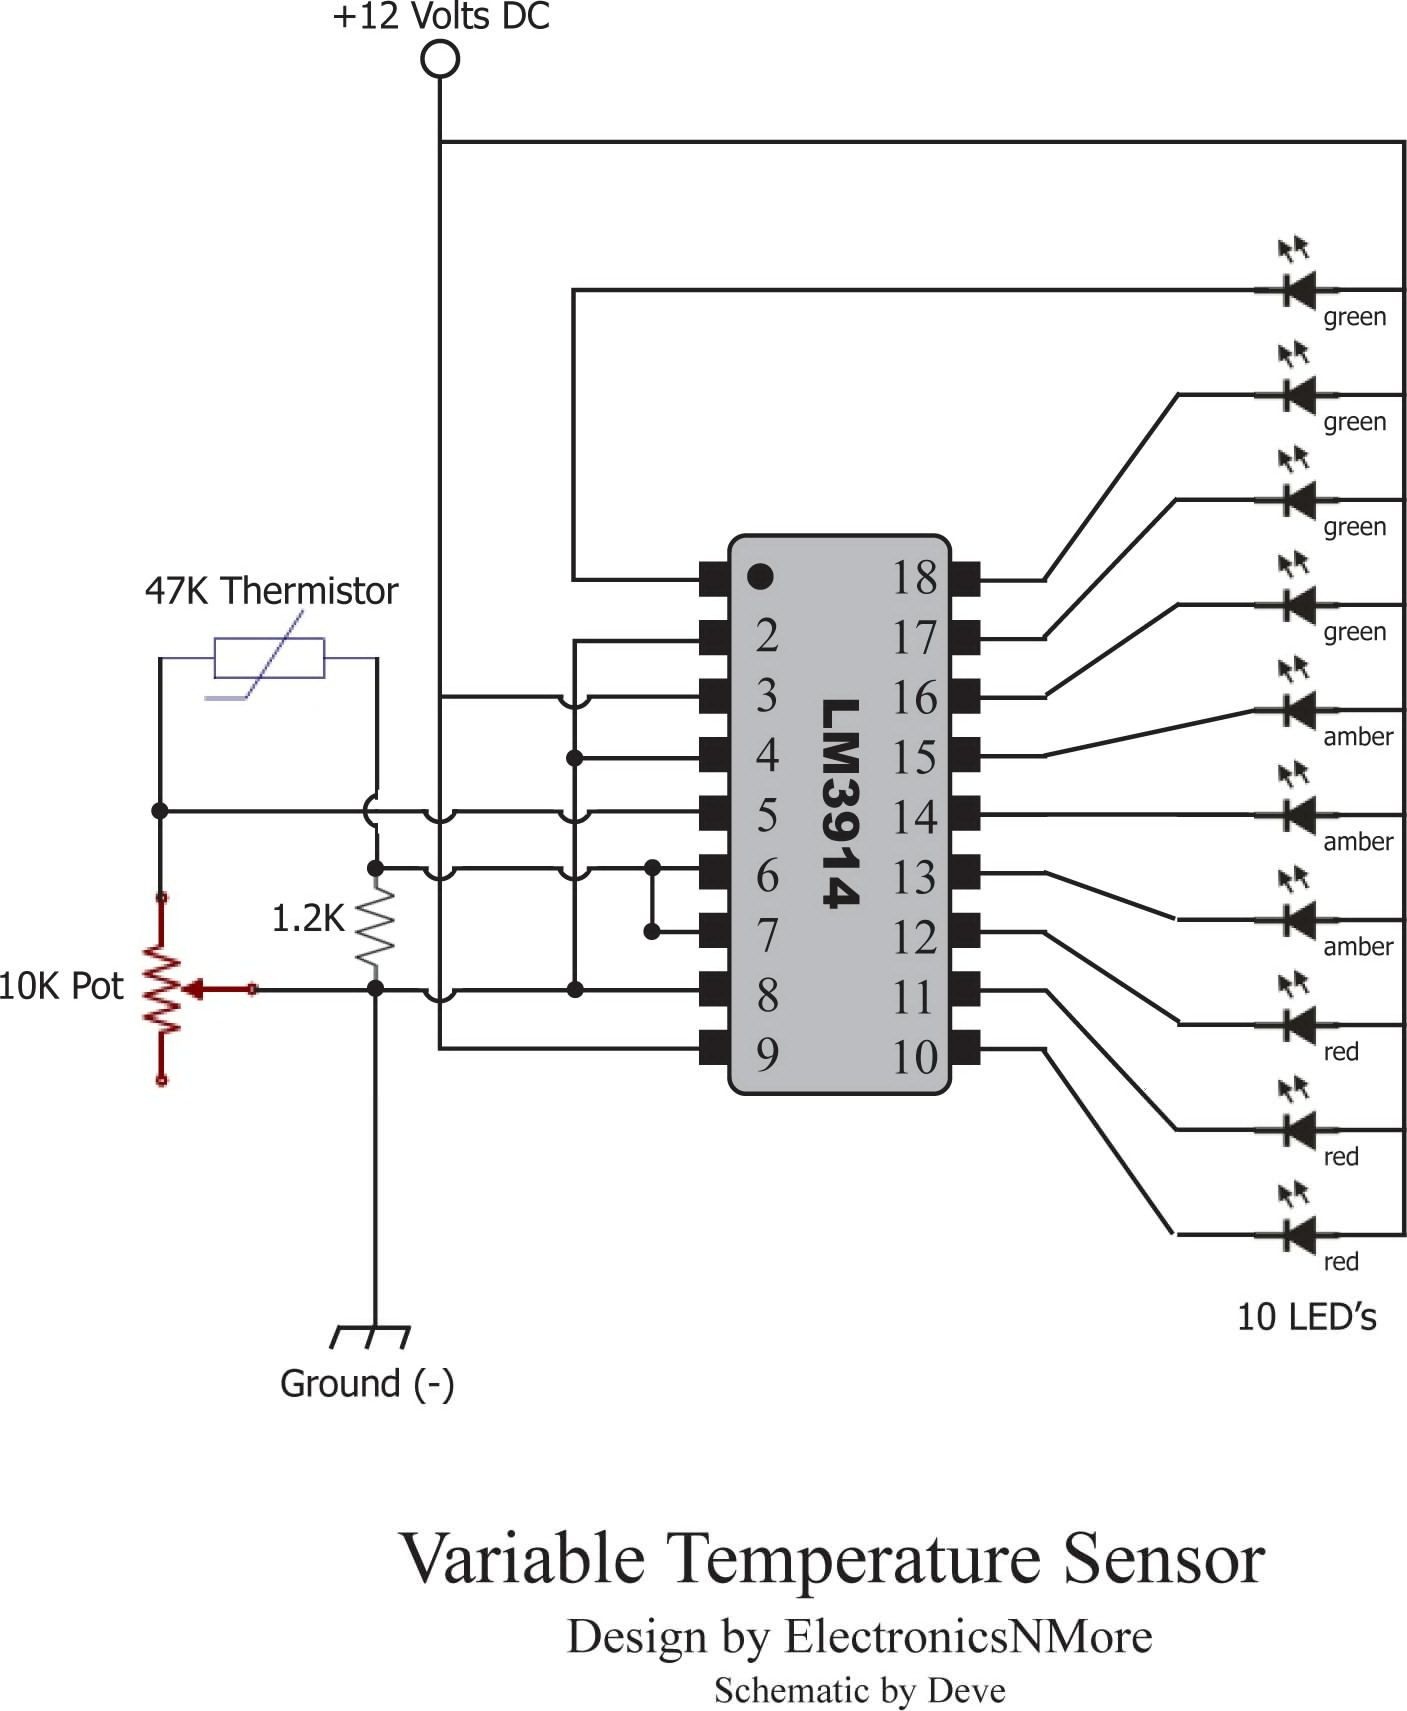 tyco relays diagram